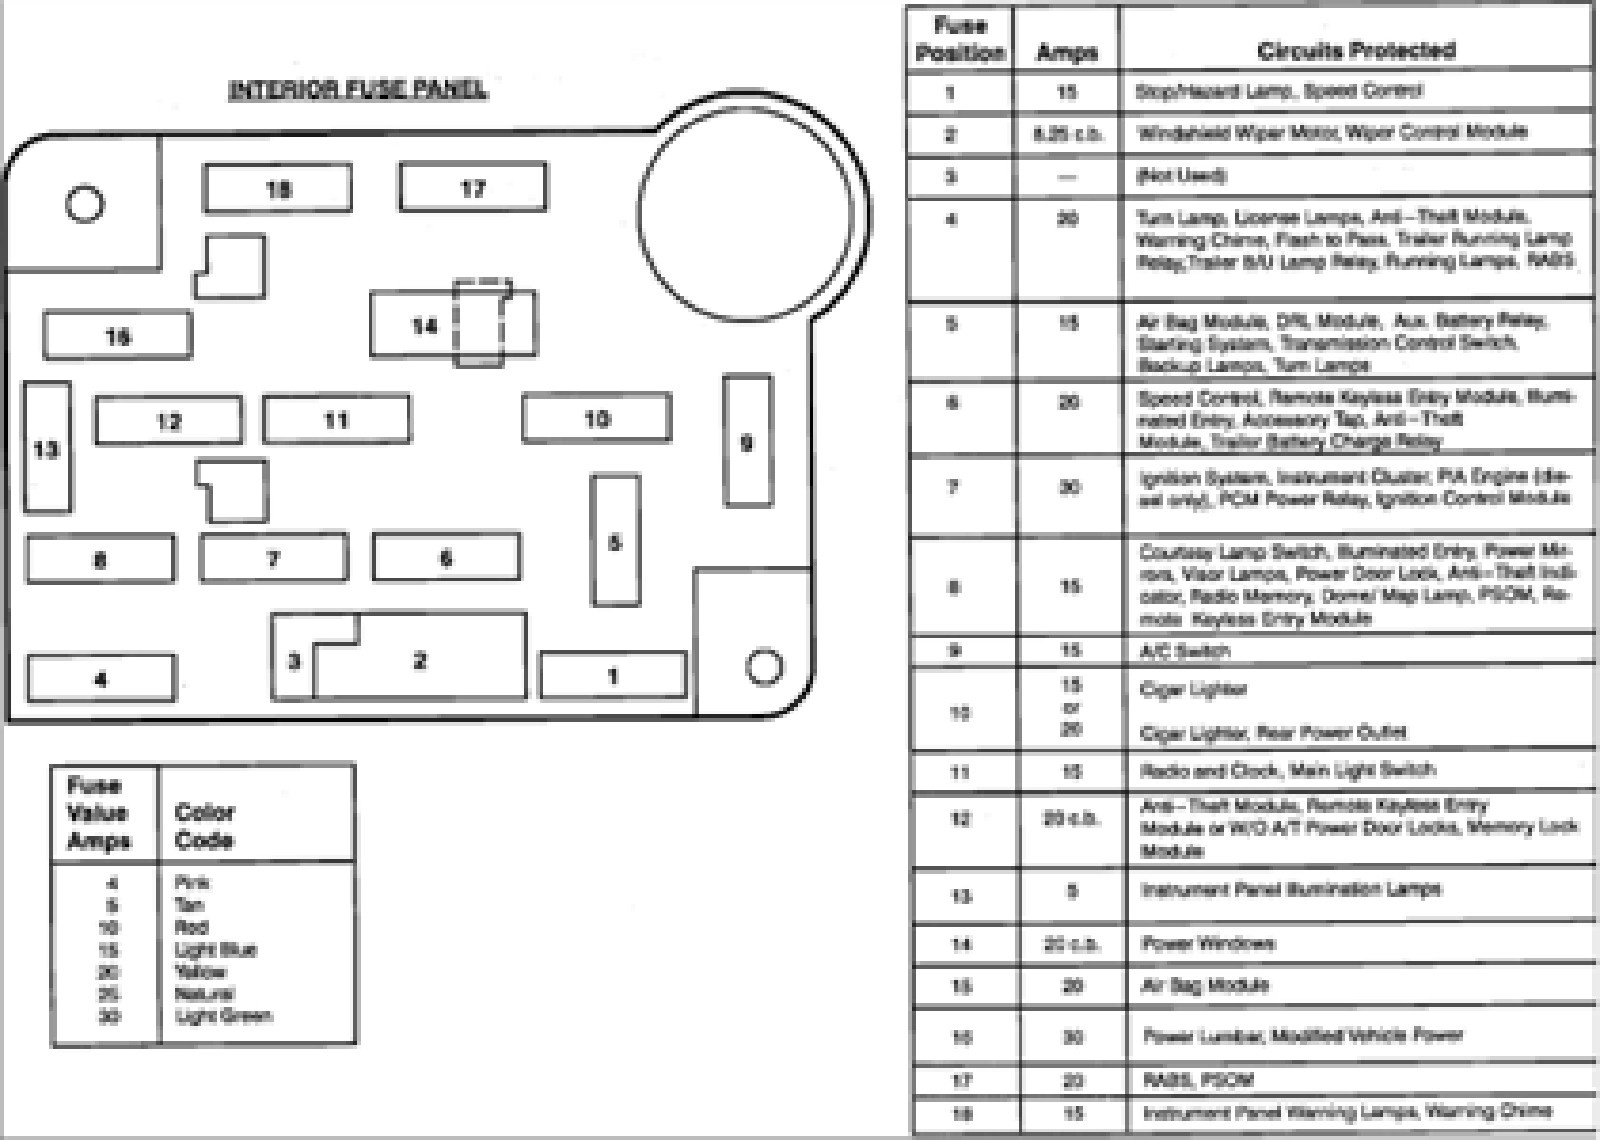 pic 8862473225641007897 1600x1200 1989 ford ranger fuse box diagram 1994 ford ranger fuse box layout how to wire a fuse box diagram at fashall.co